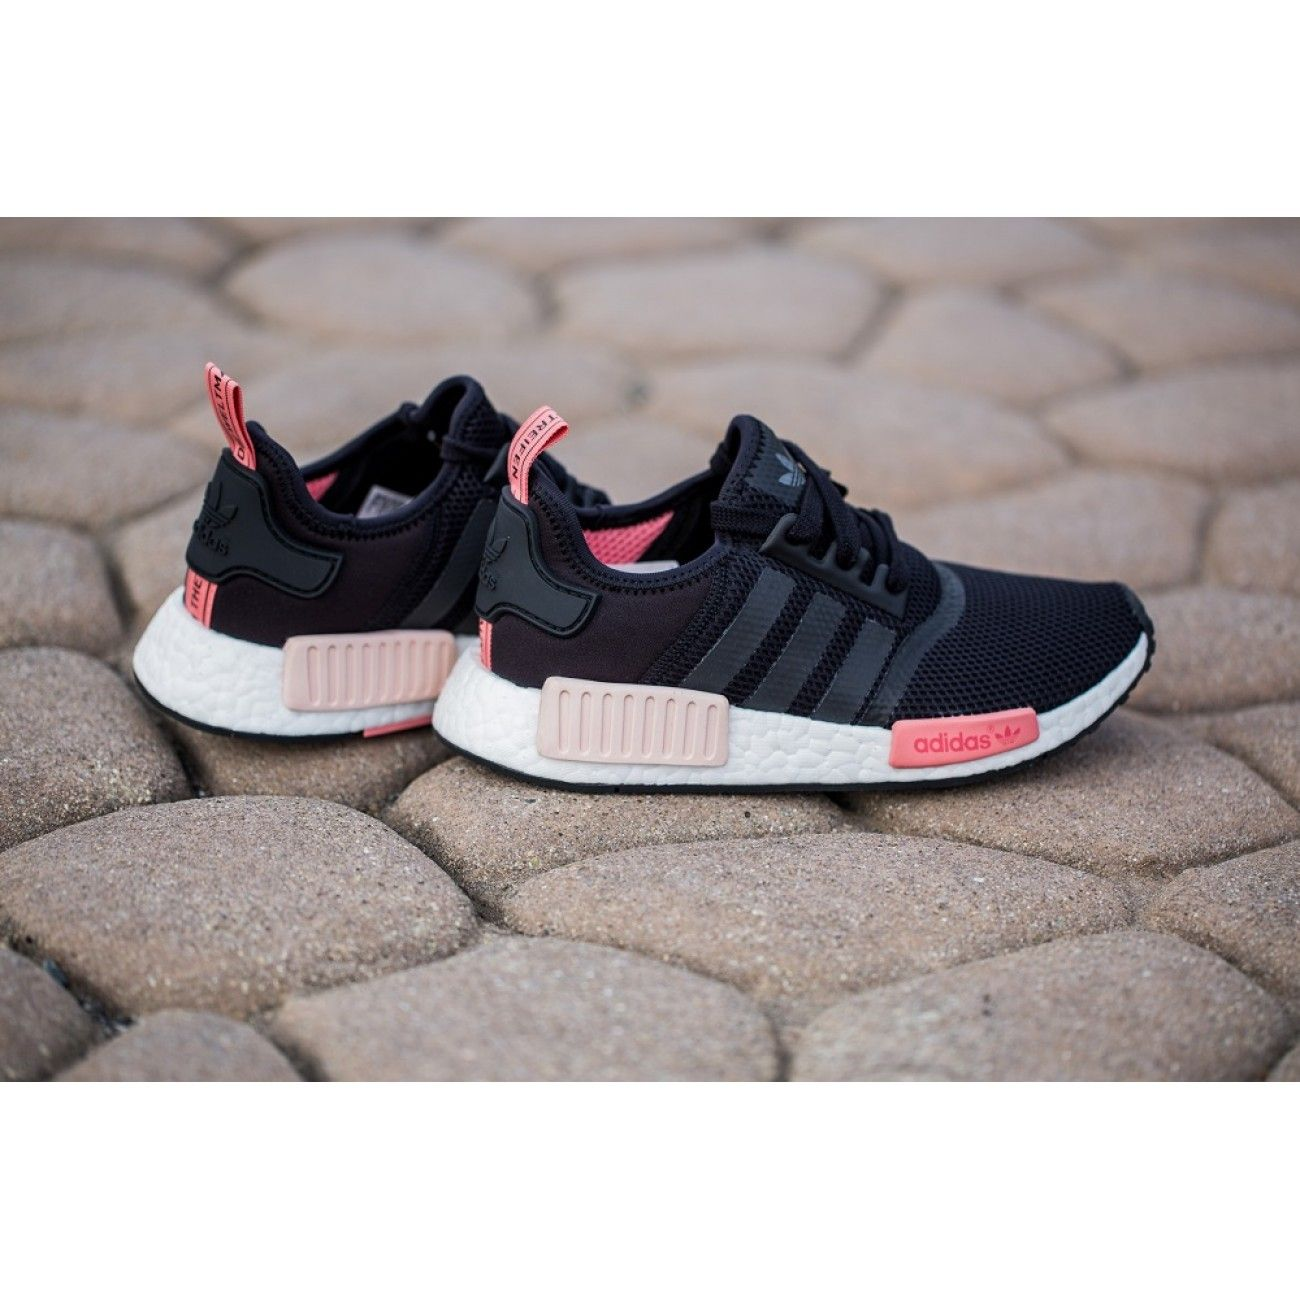 Adidas NMD_R1 Runner W 'Core Black/Peach pink'